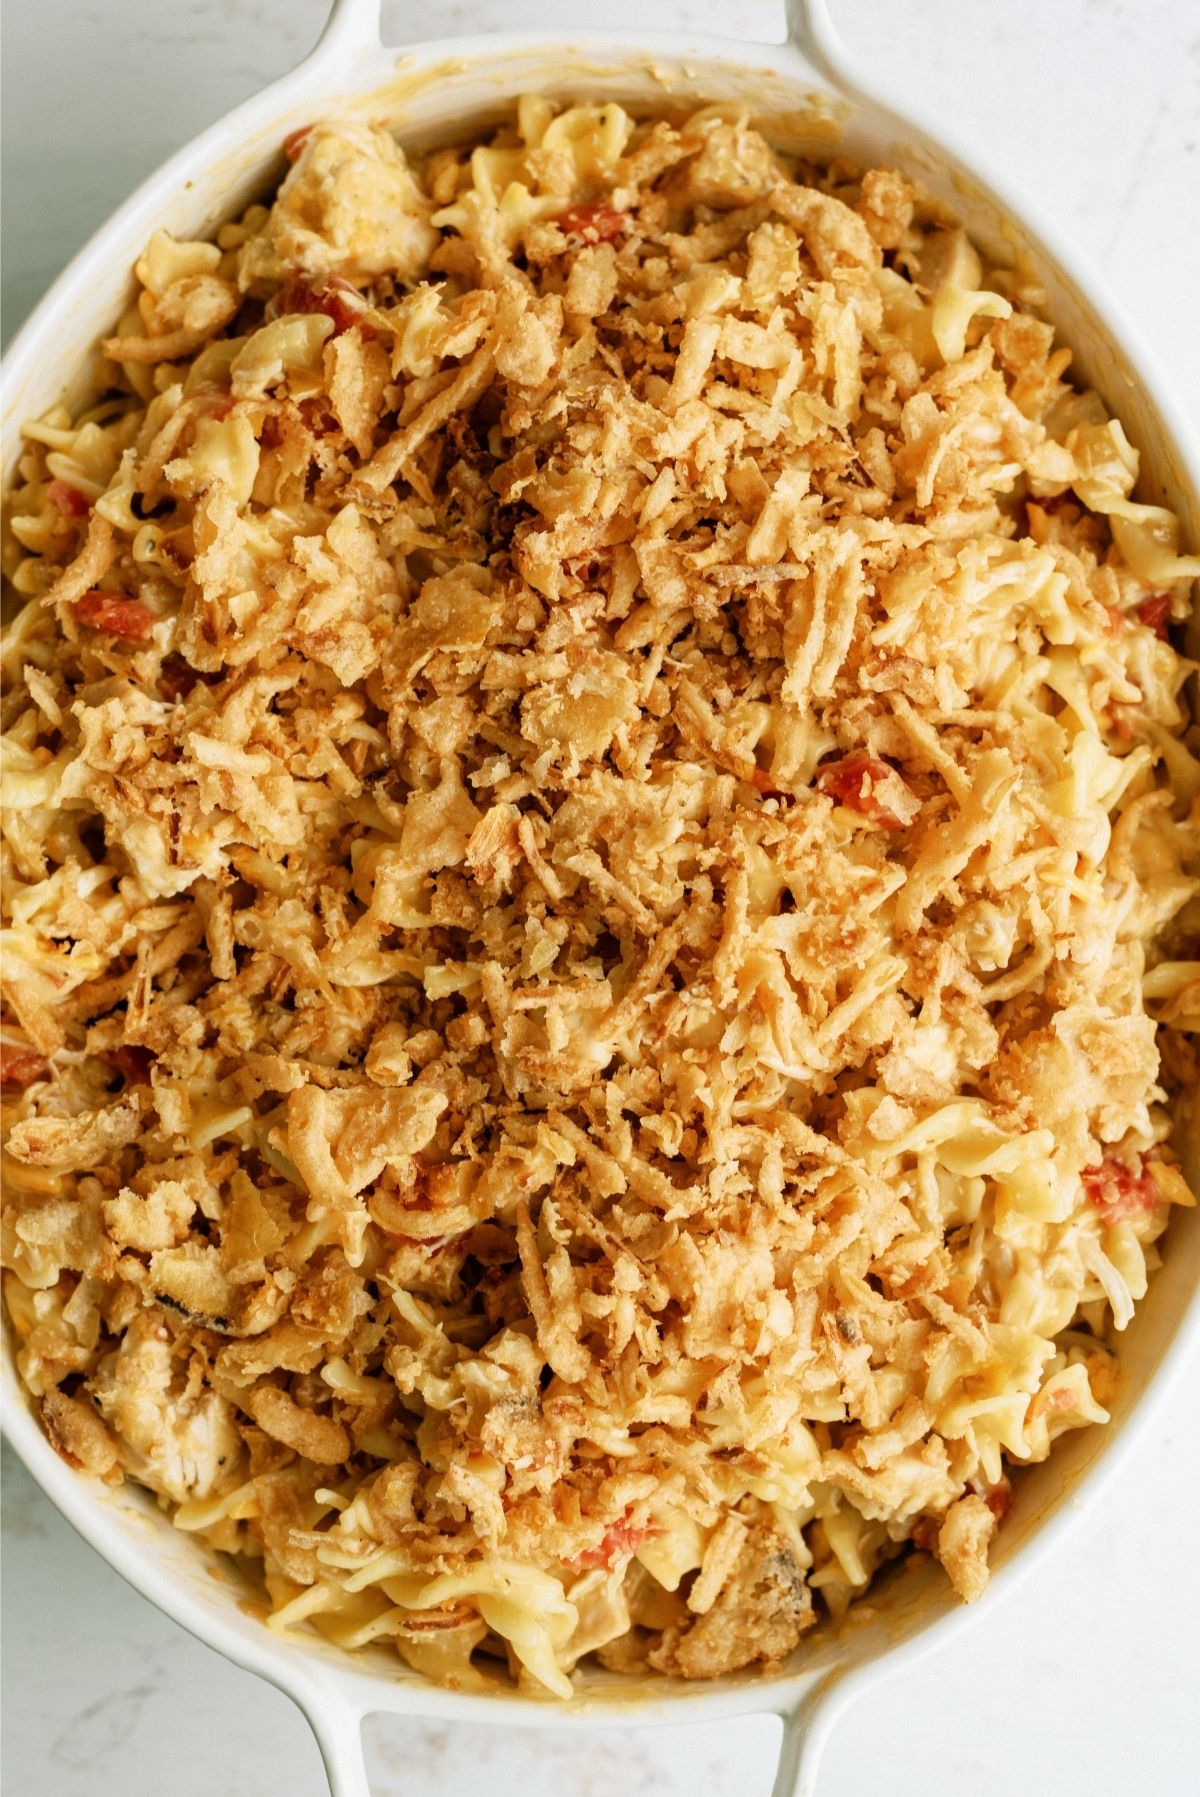 Unbaked French Onion Chicken Noodle Casserole in a white casserole dish